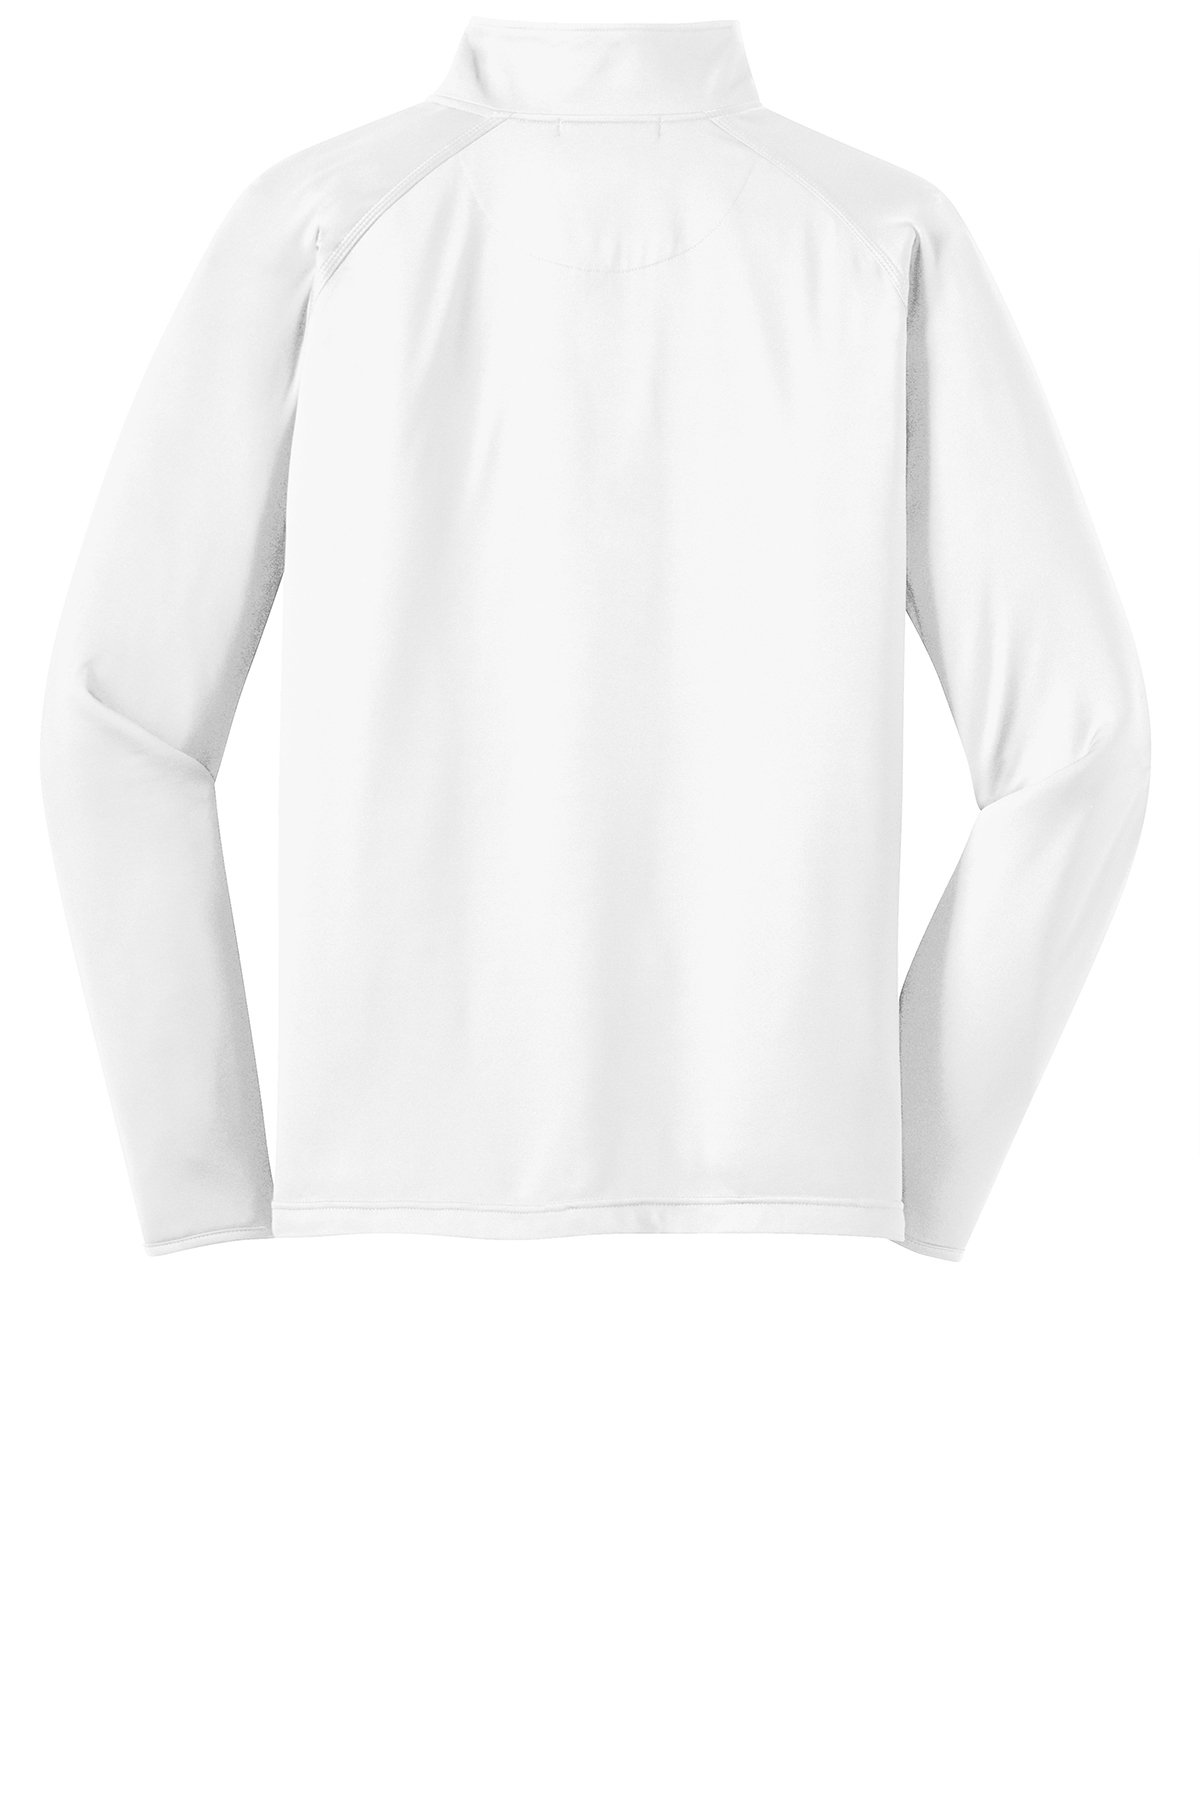 Sport Tek Tall Sport Wick Stretch 1 2 Zip Pullover Performance Sweatshirts Fleece Sport Tek Our wide selection is elegible for free shipping and free returns. sport tek tall sport wick stretch 1 2